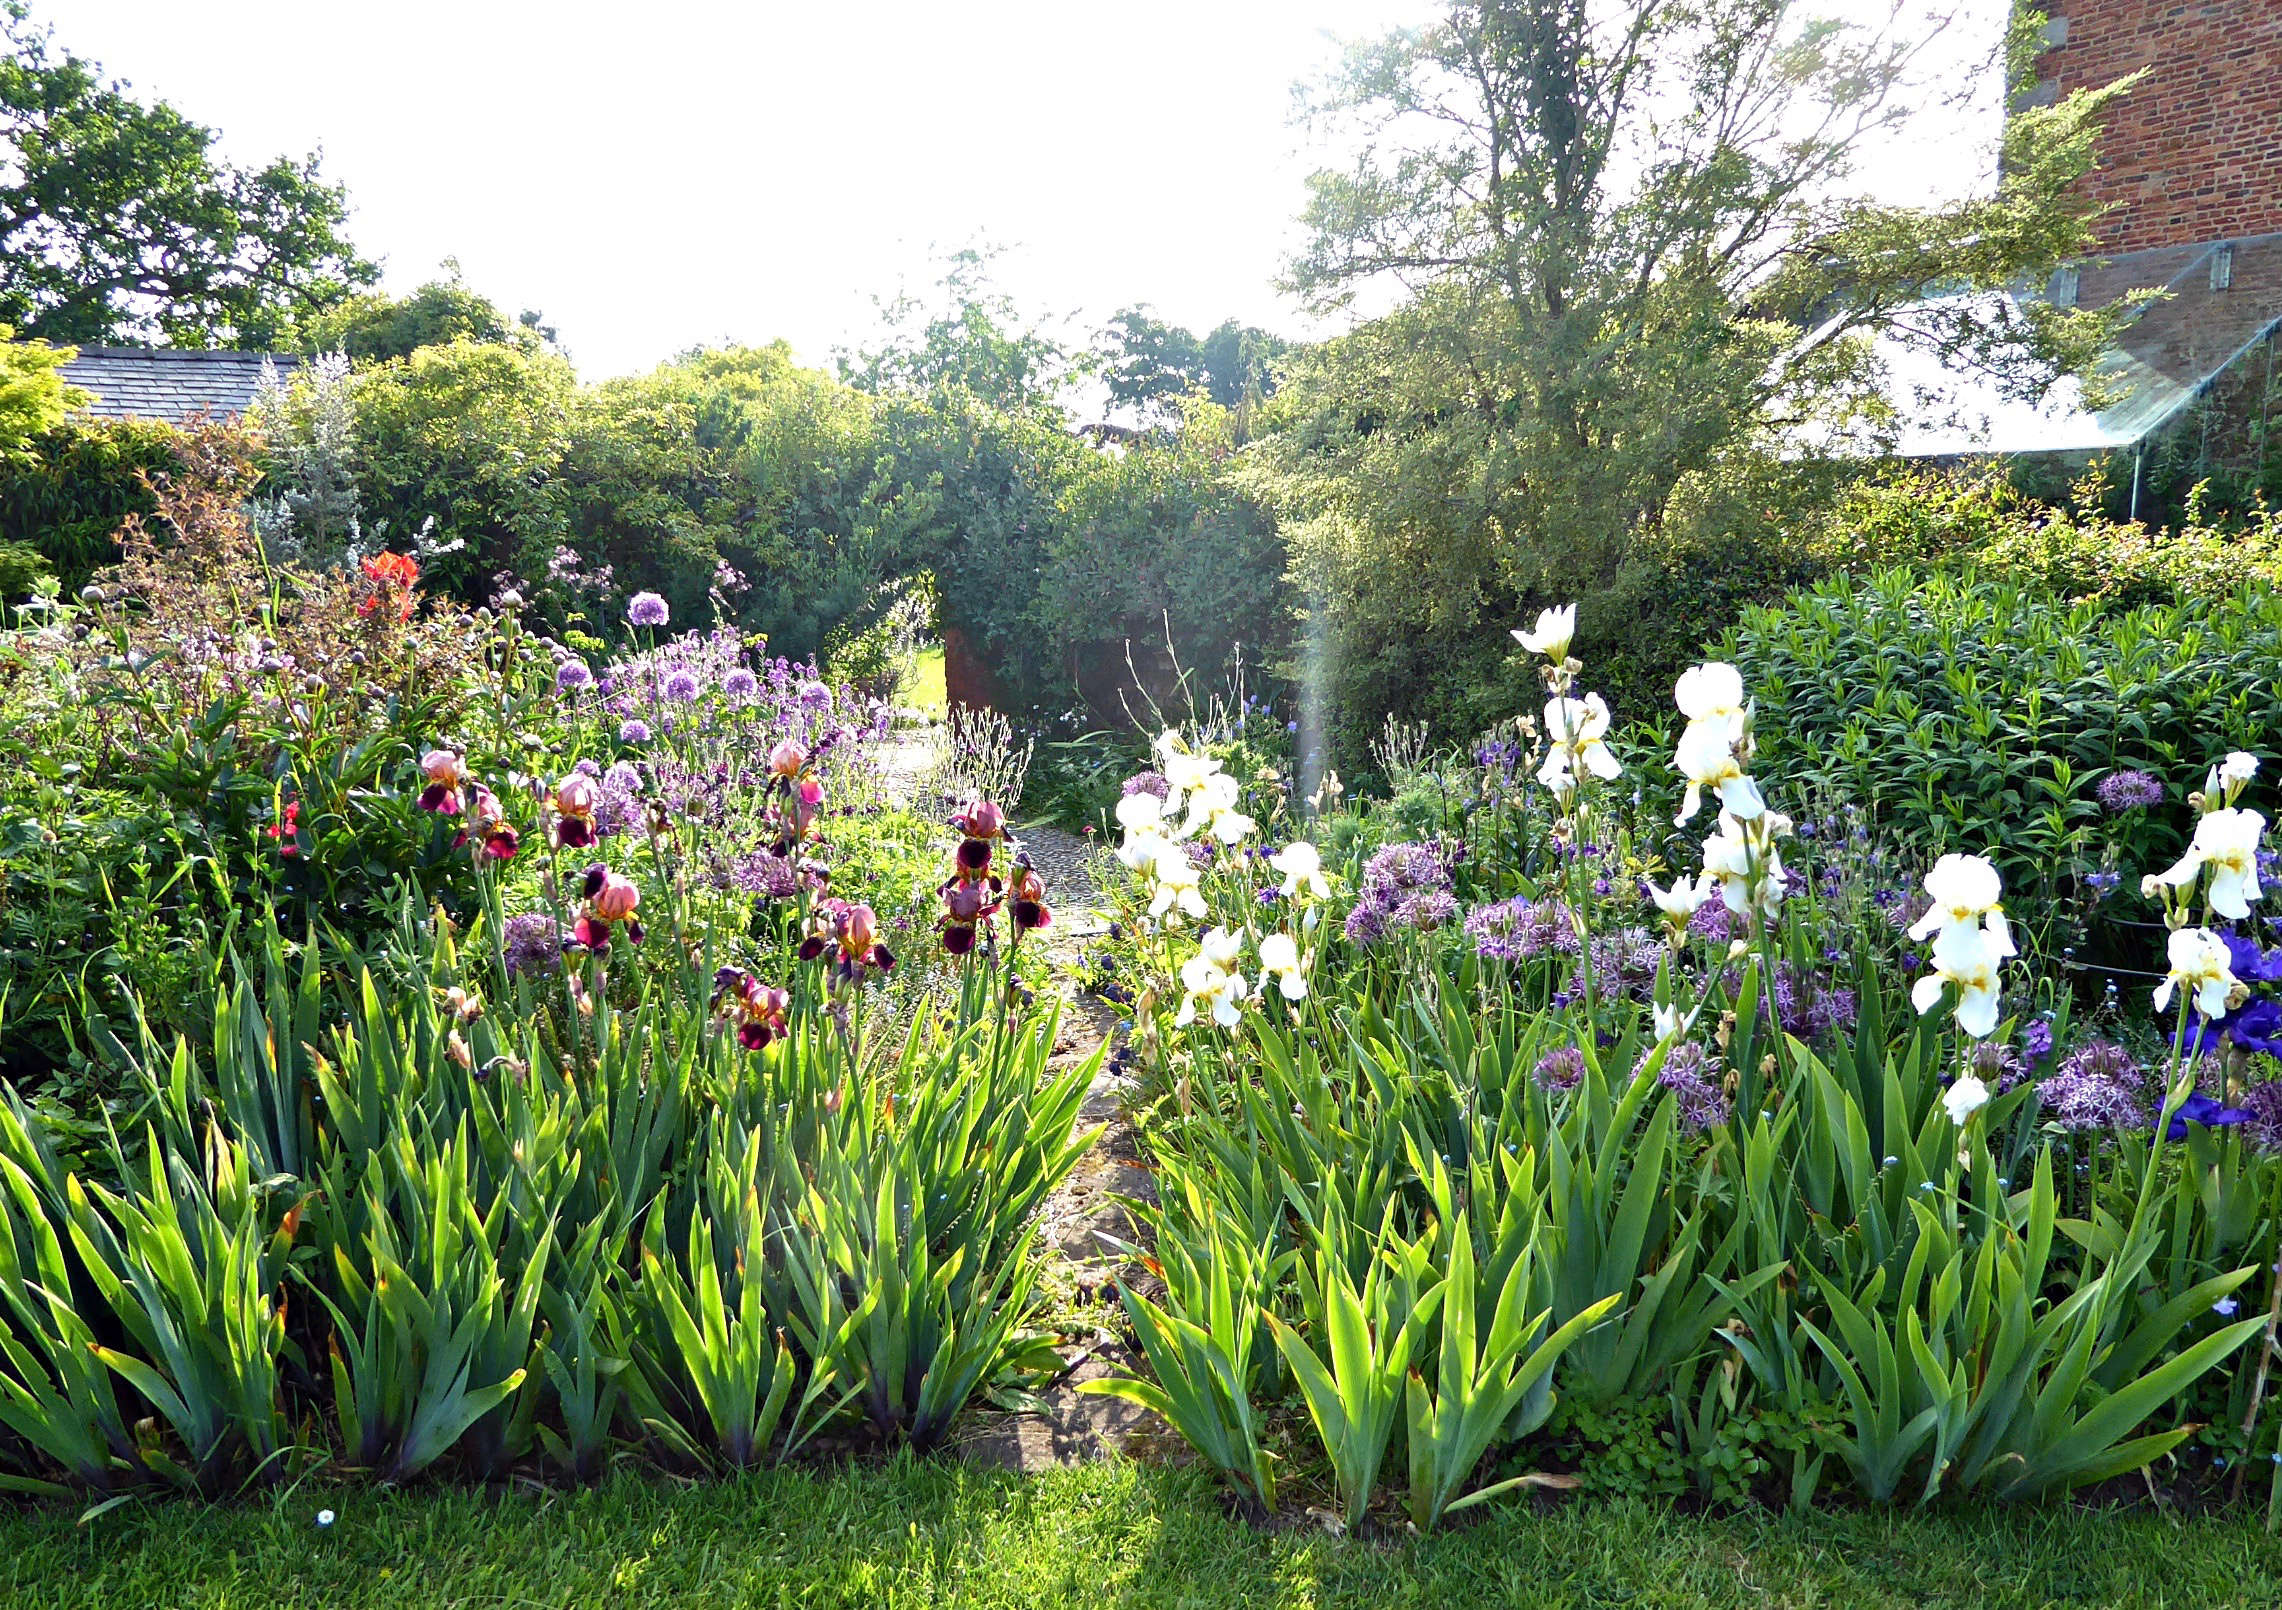 Garden Visit Flower Borders in a Colorful English Garden